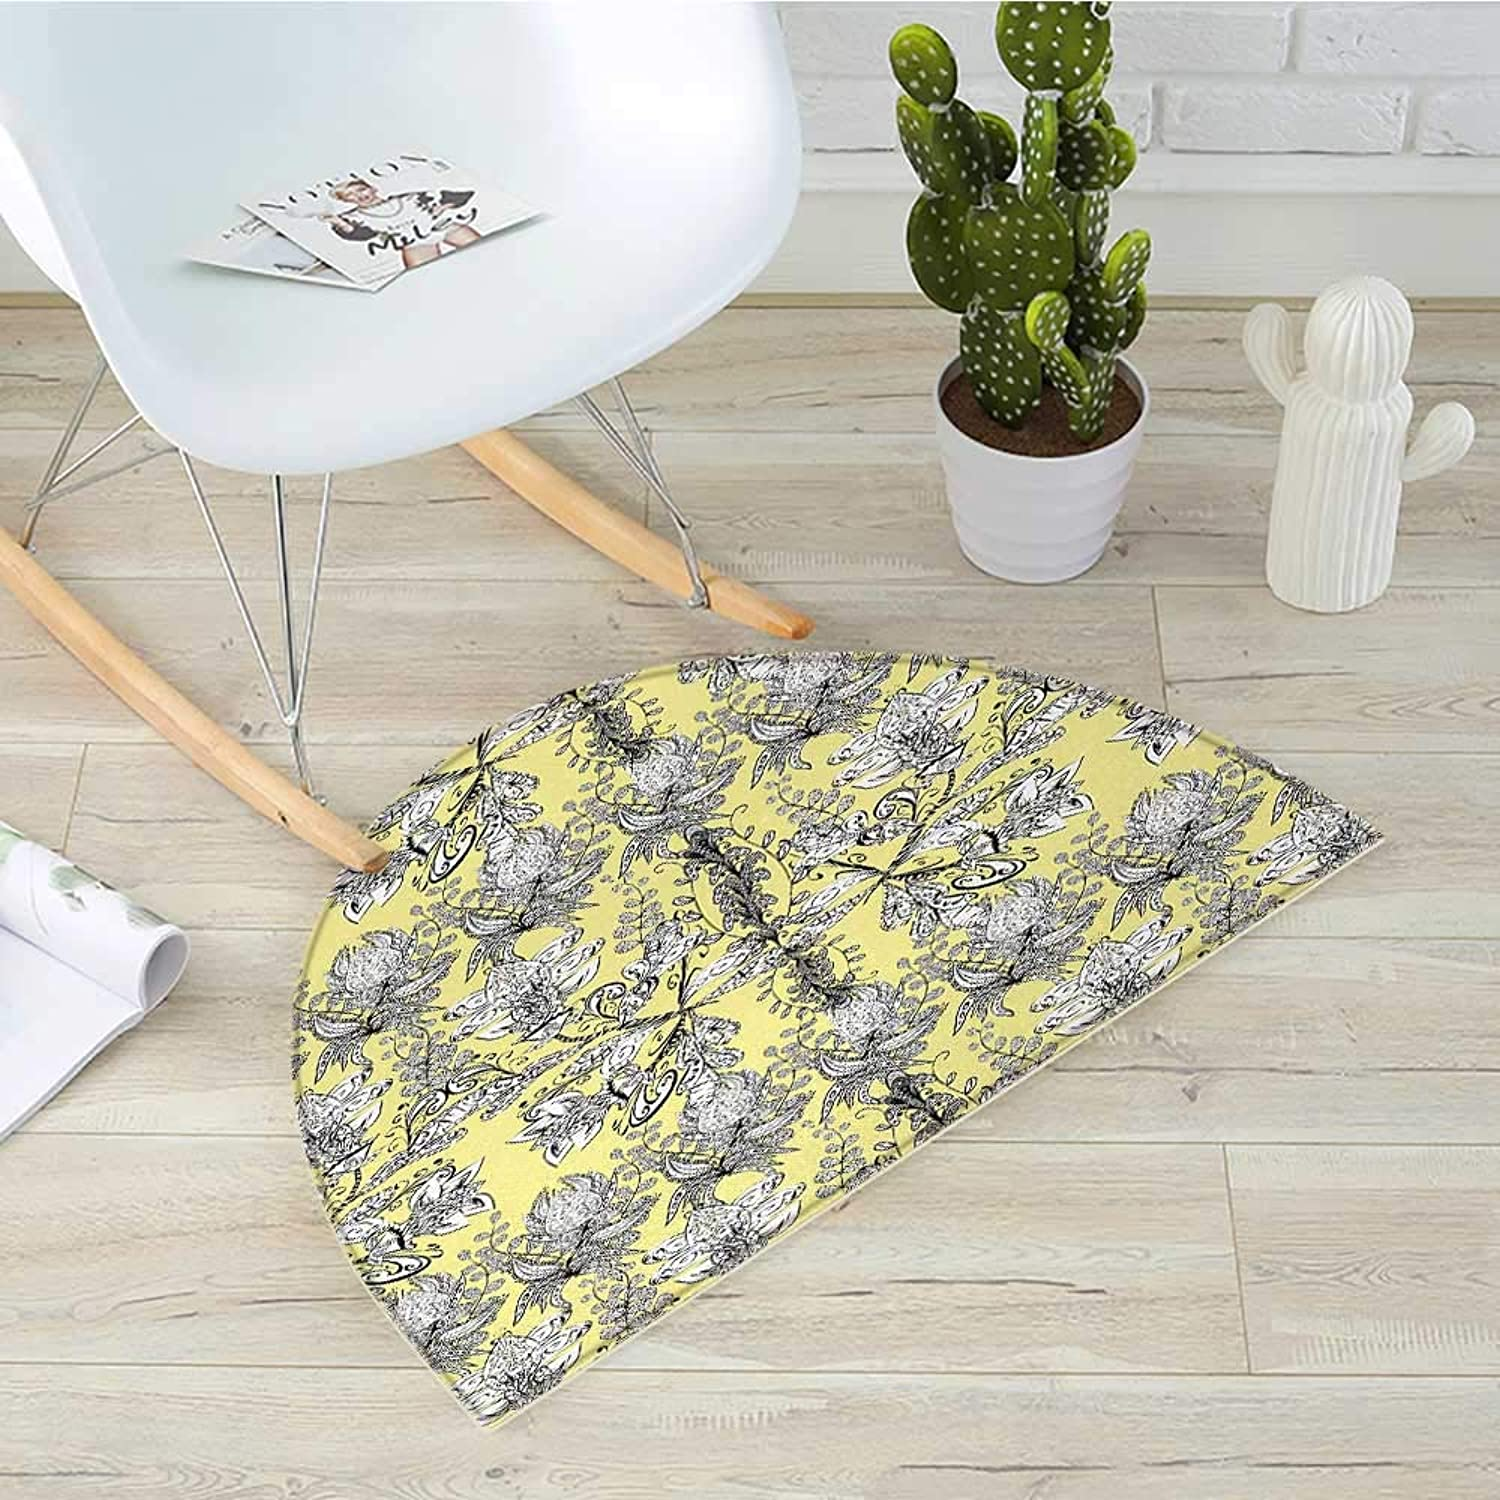 Grey and Yellow Semicircular CushionEthnic Tribal Bohem Design with Flowers Leaves Swirls and Dots Image Entry Door Mat H 47.2  xD 70.8  Black and White